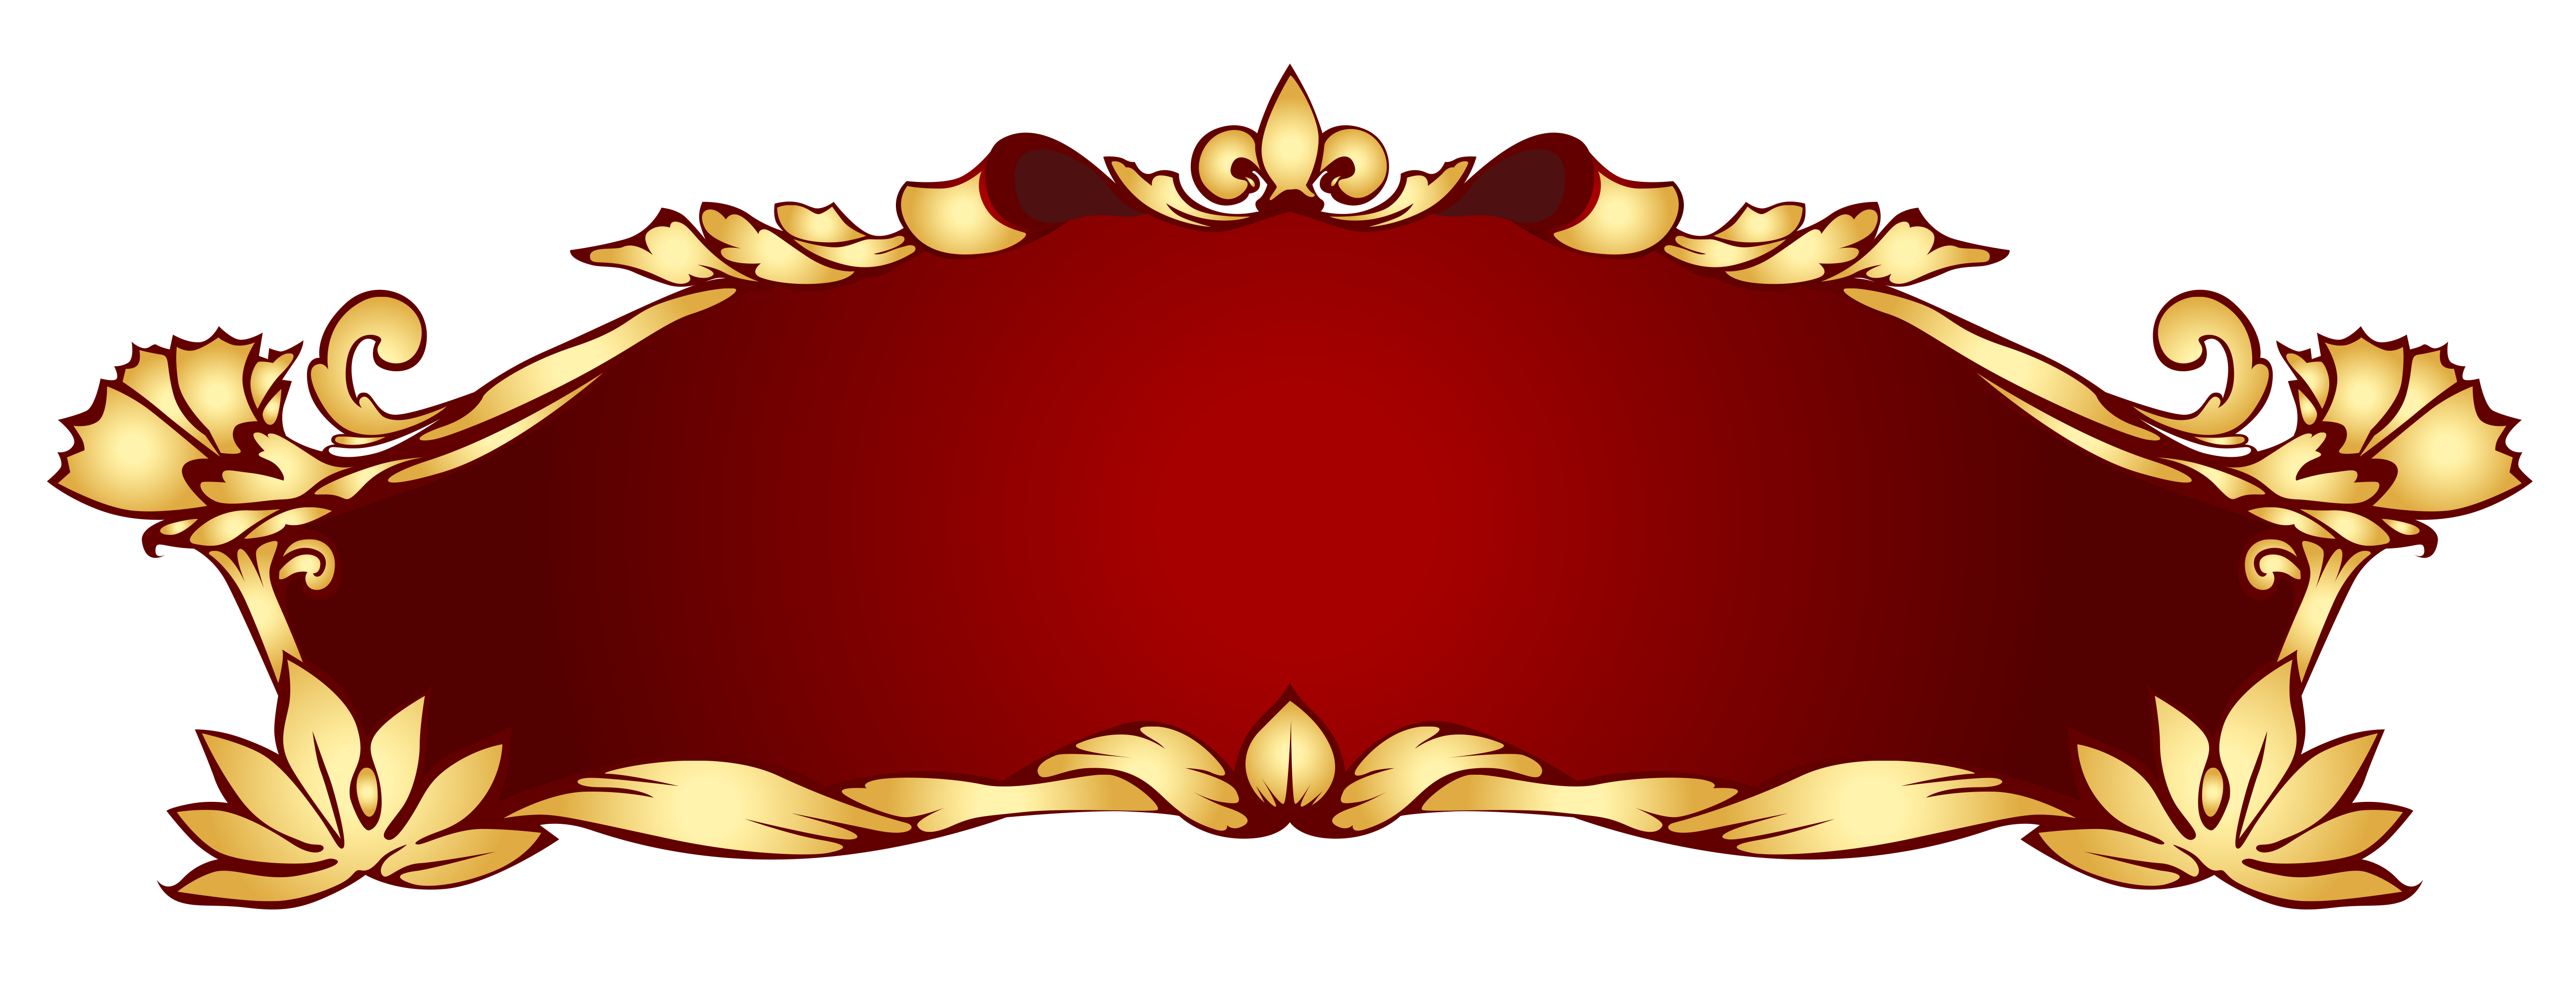 Transparent Red Deco Banner PNG Picture Banner clip art